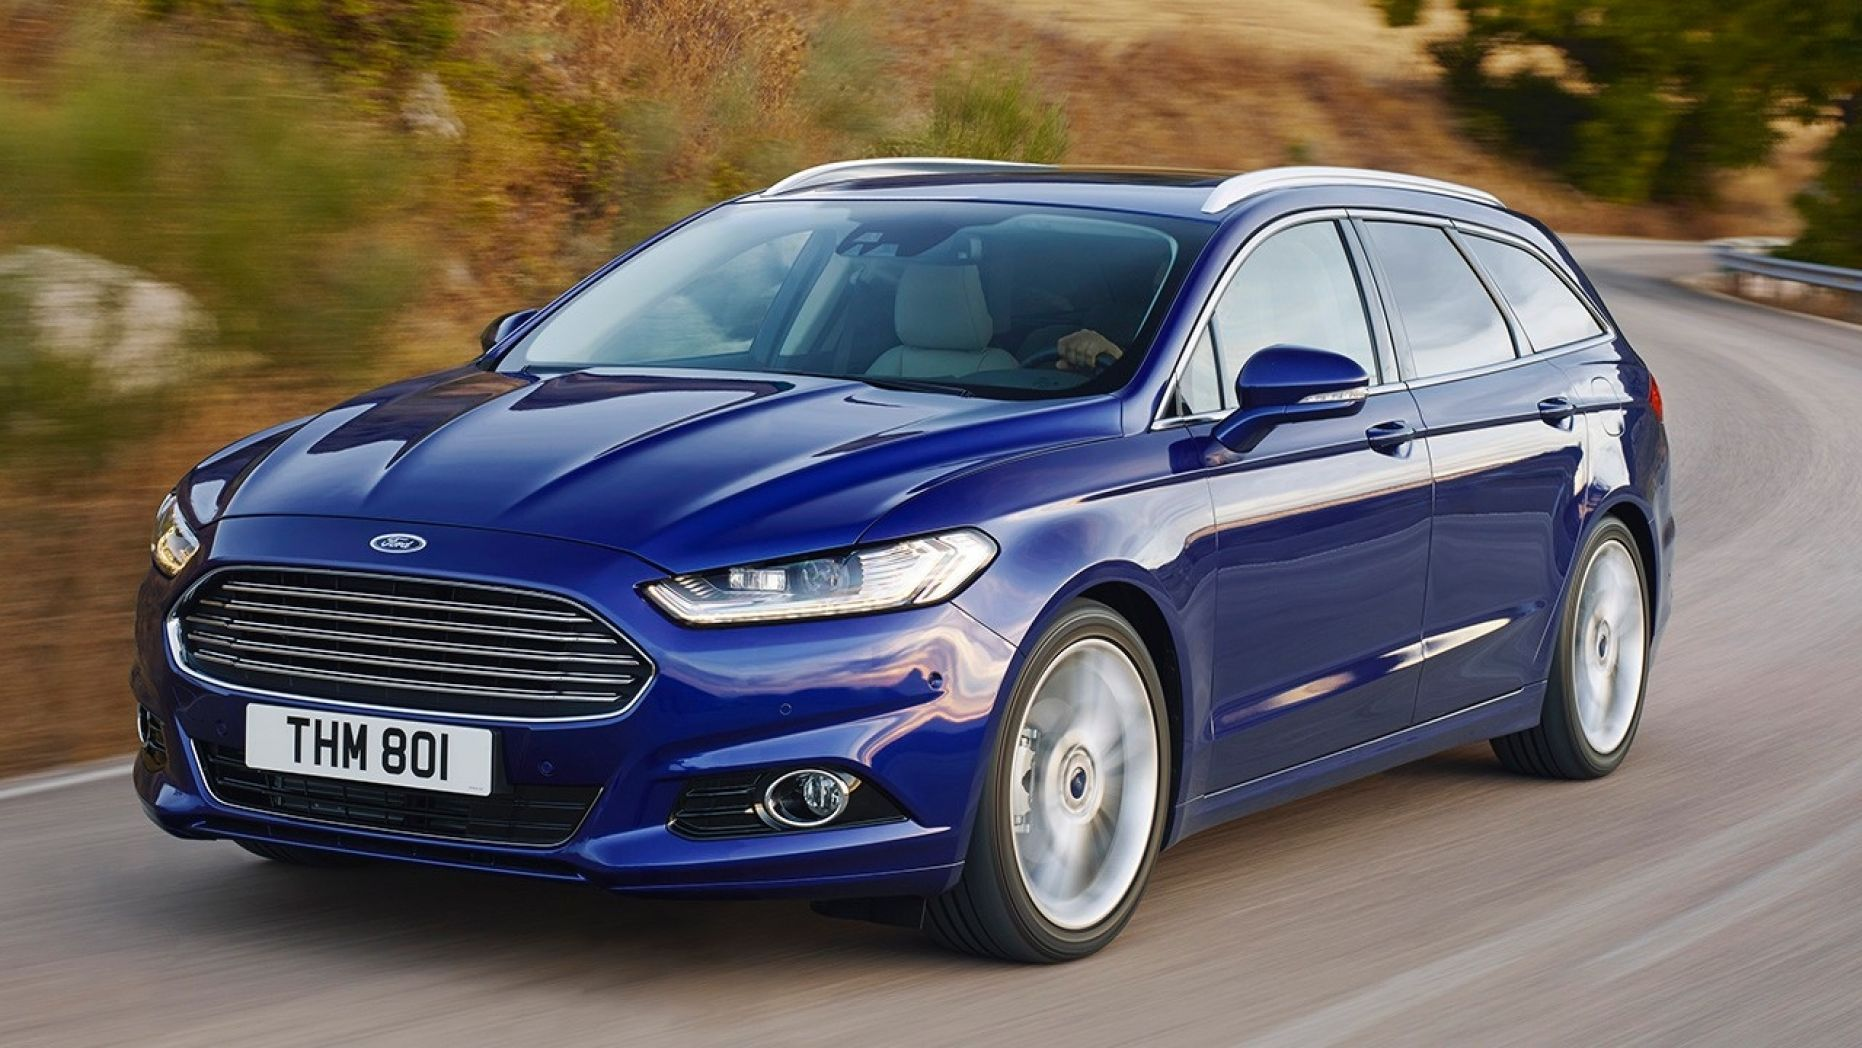 Imagine This Mondeo Wagon But Taller Ford Fusion Ford Mondeo Wagon Ford Mondeo